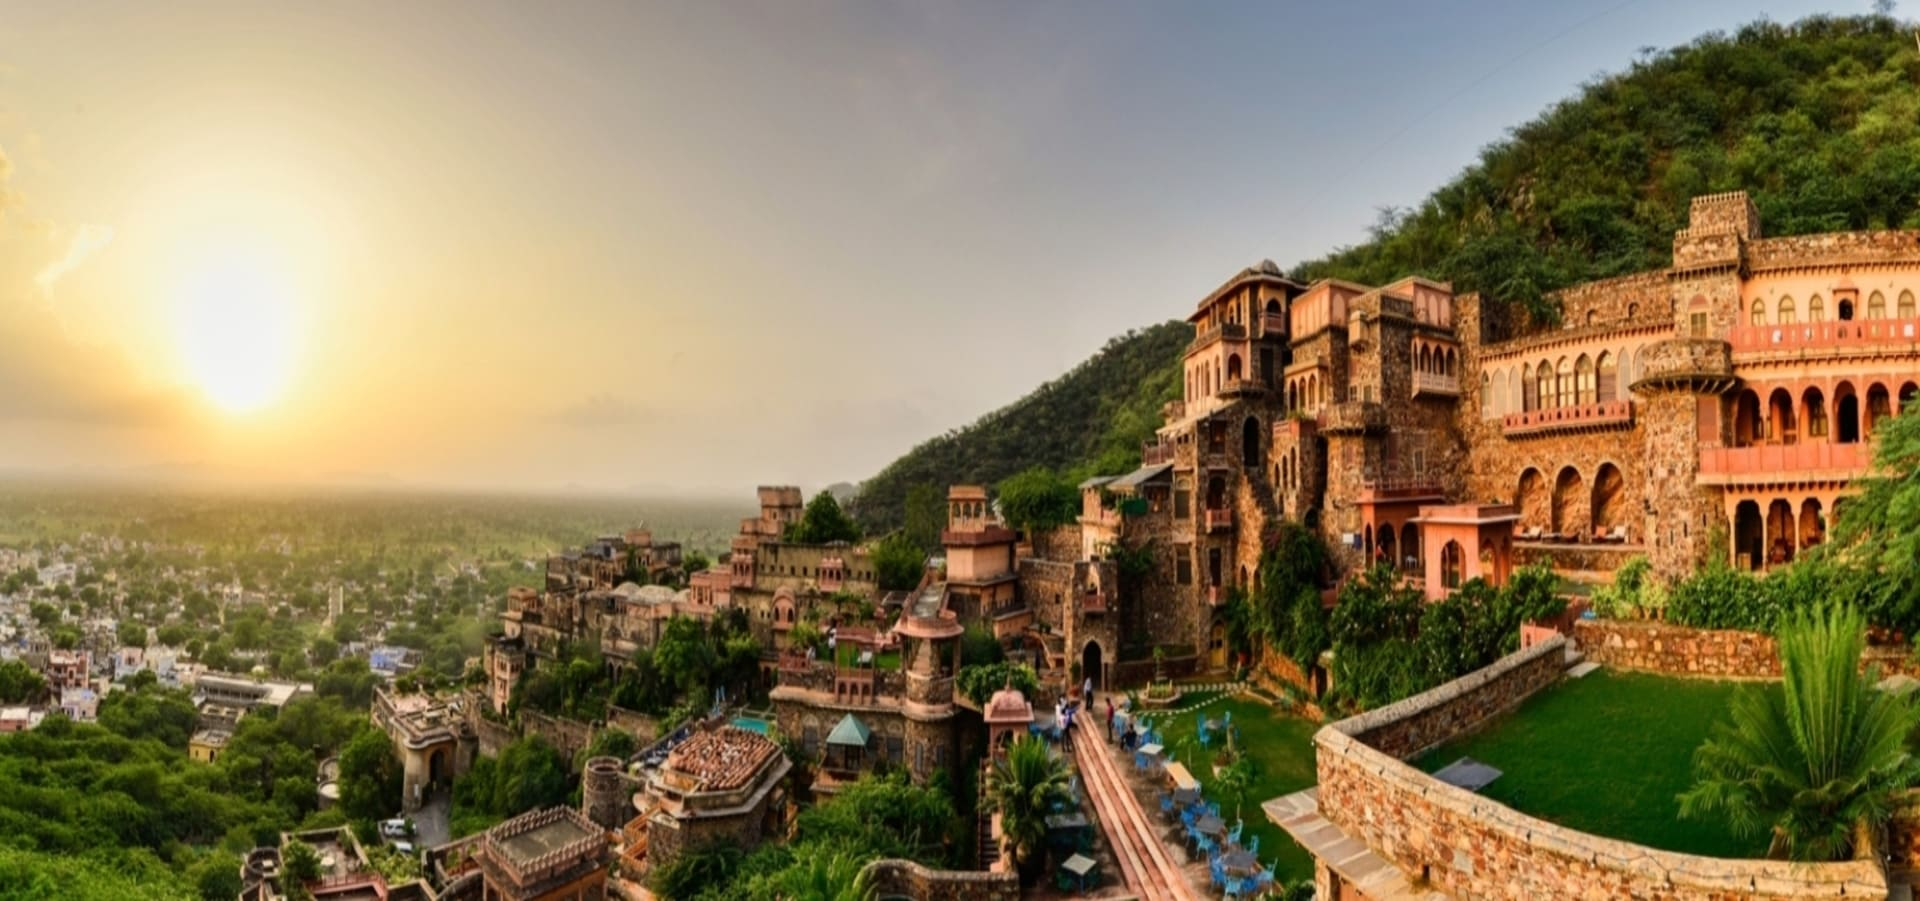 A view of Neemrana Fort Palace in the evening